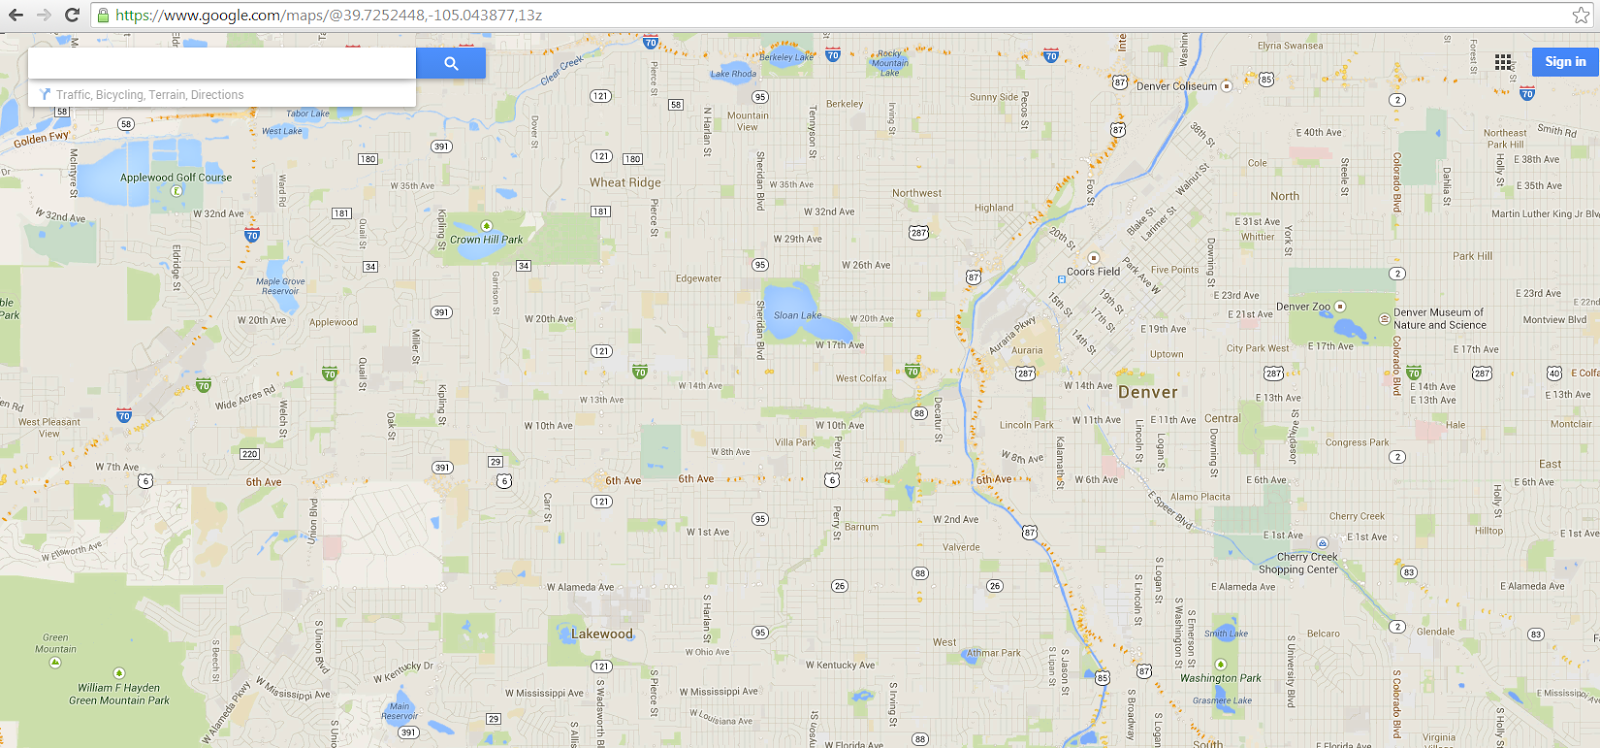 GIS And Remote Sensing Tools Tips And More - Google maps us states kml